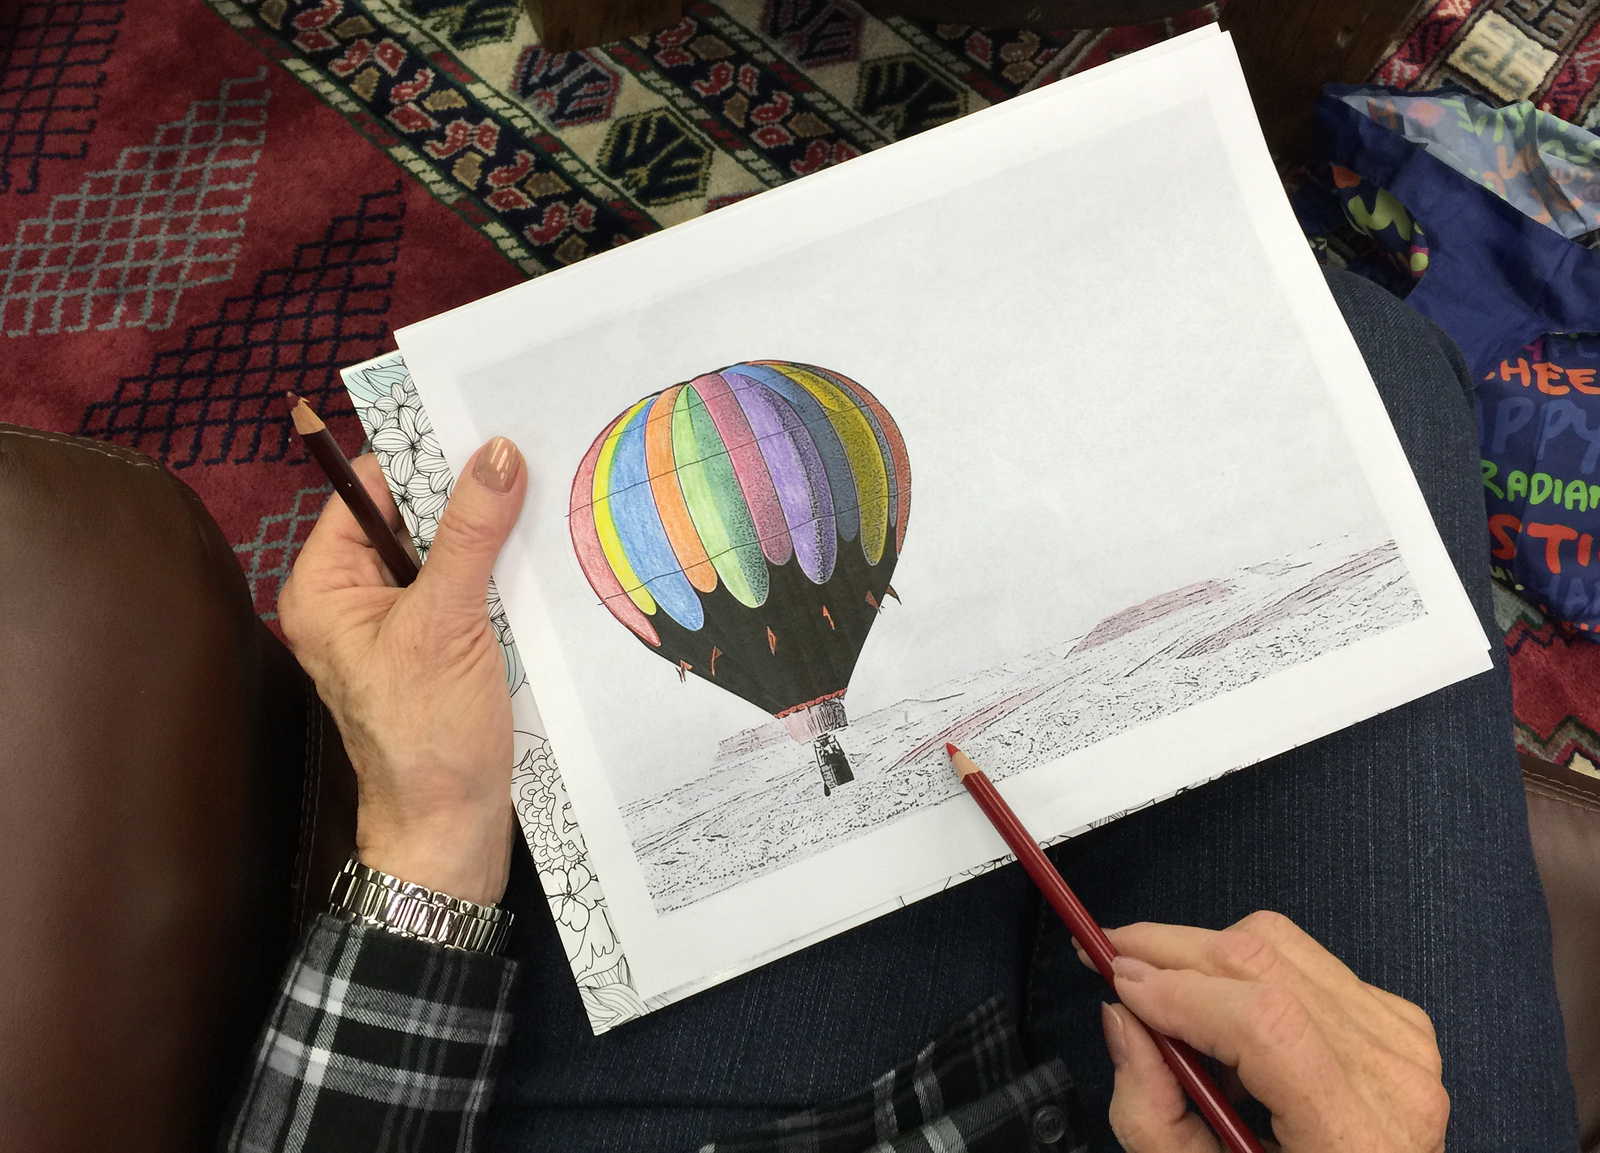 Coloring during travel relieves stress, boredom and promotes relaxation. Here's what to bring.